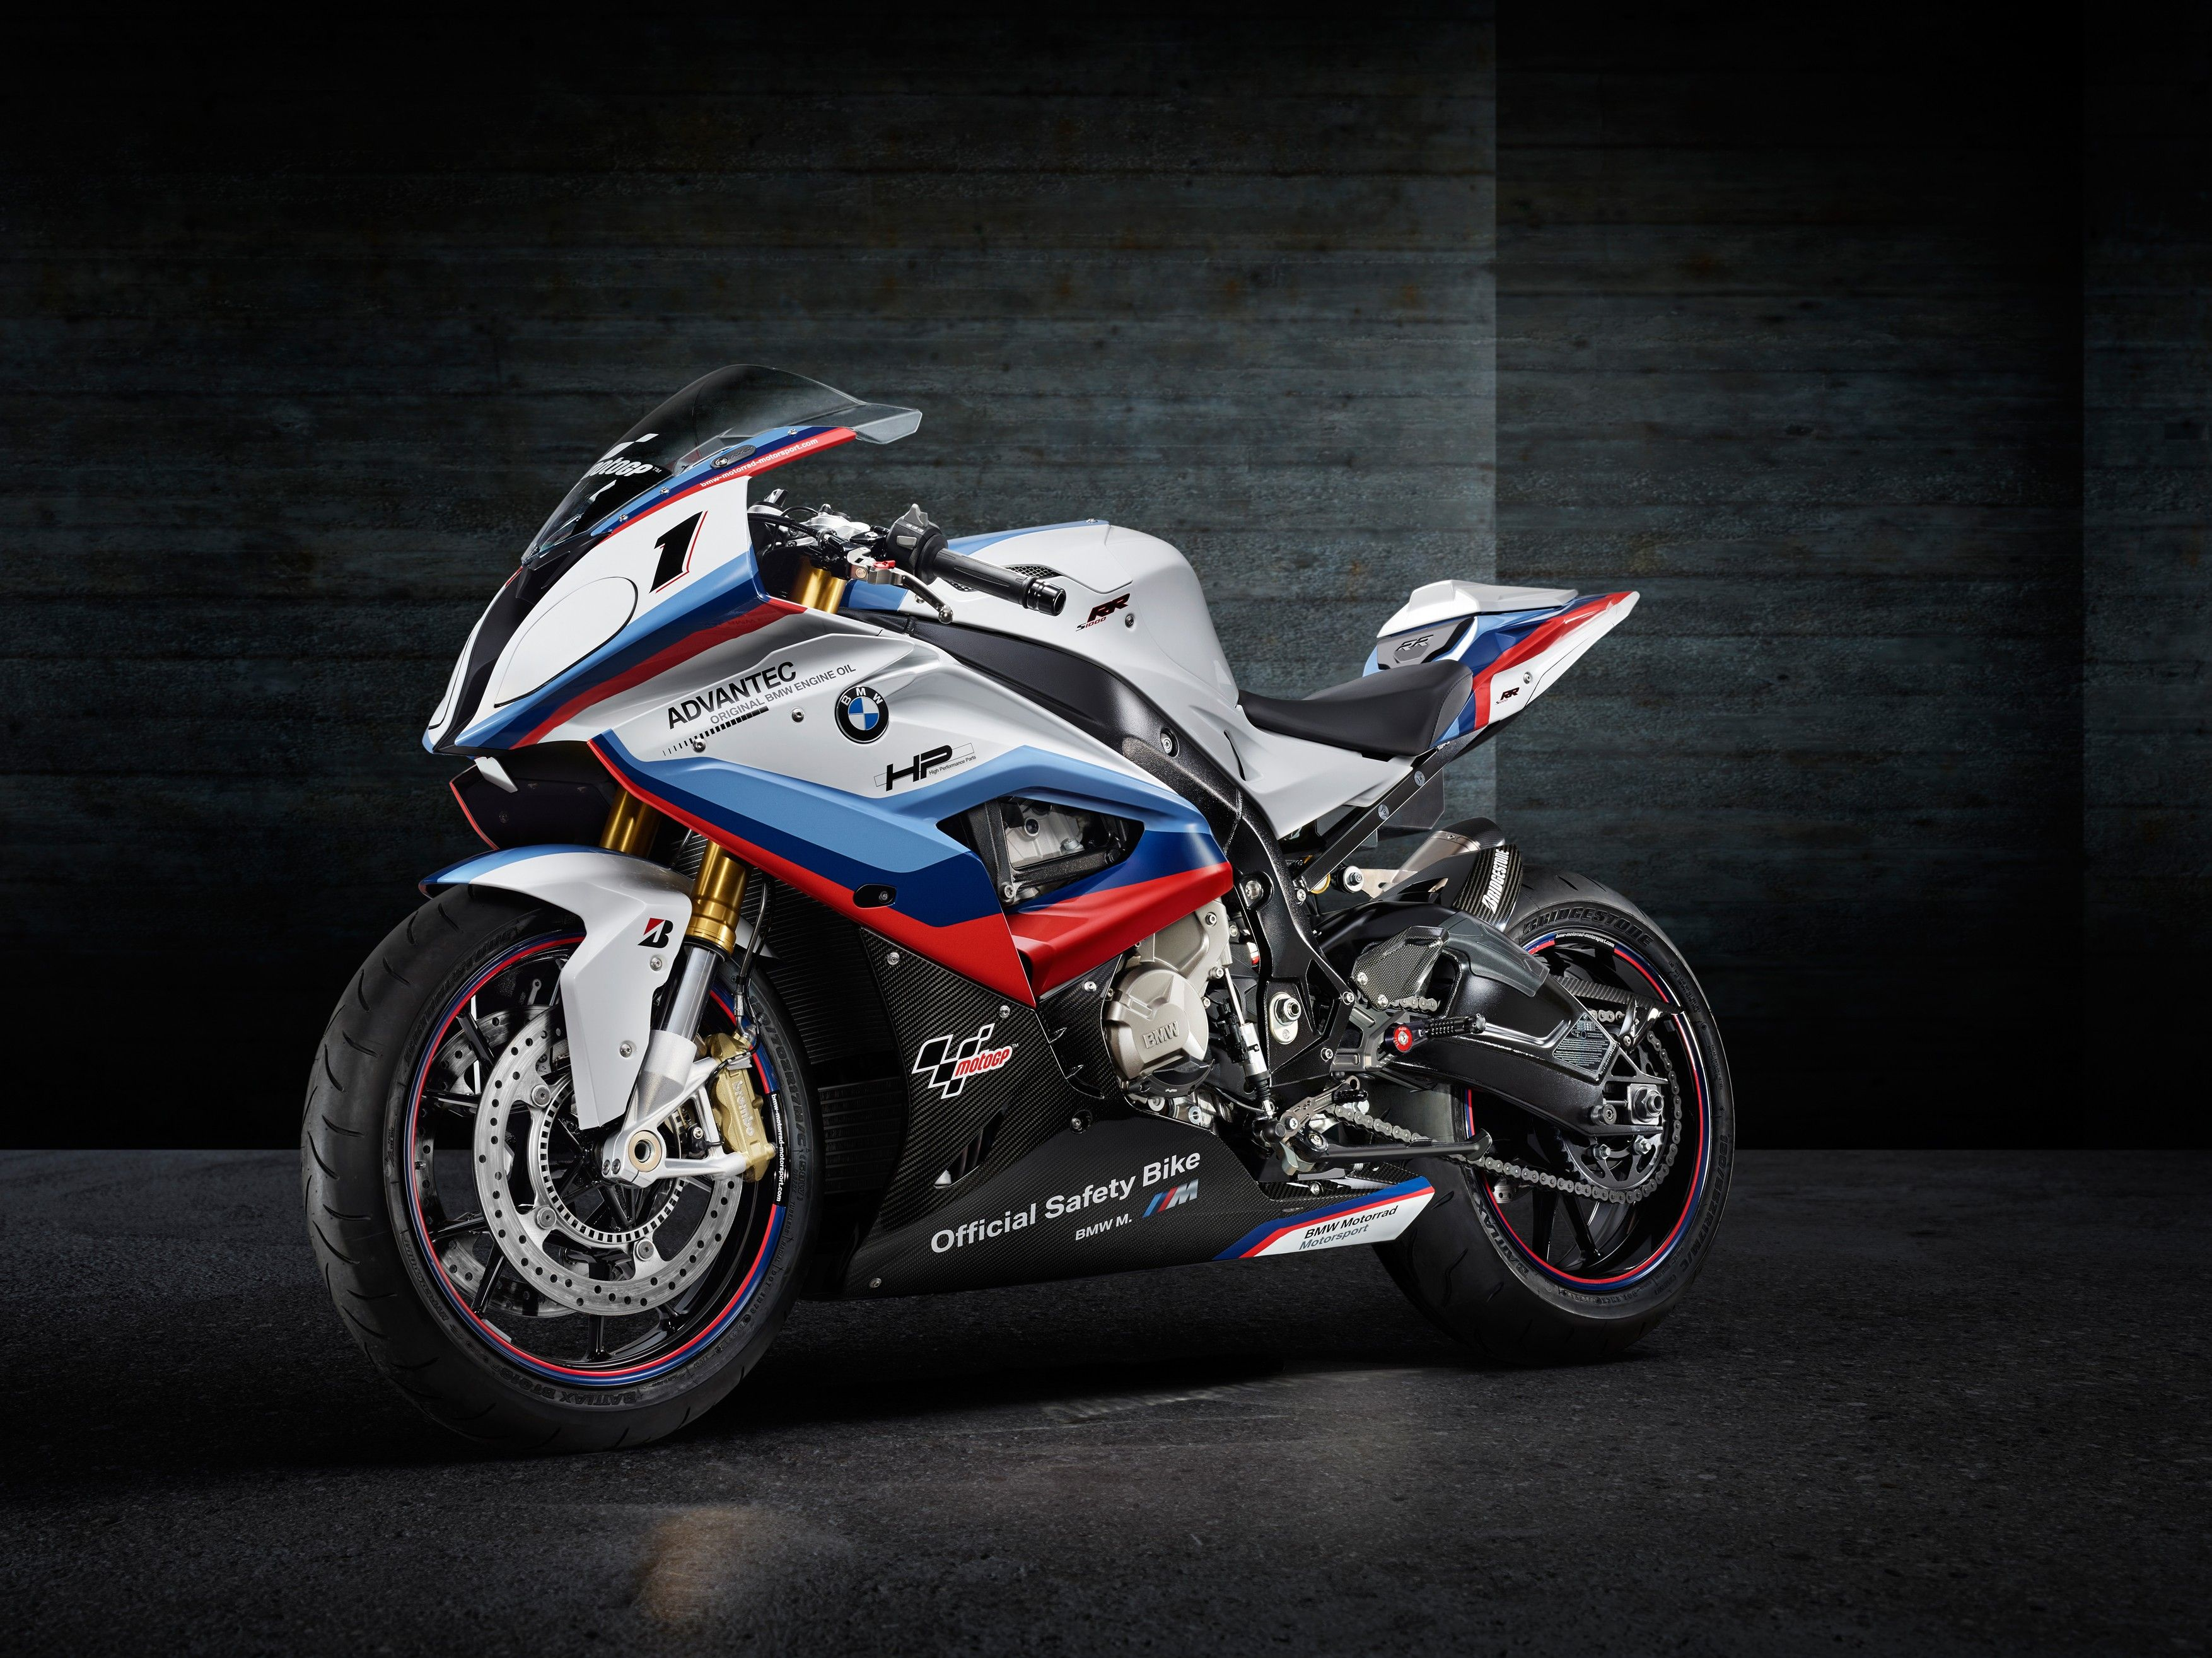 Motorcycle BMW S1000RR, 2017 wallpapers and image